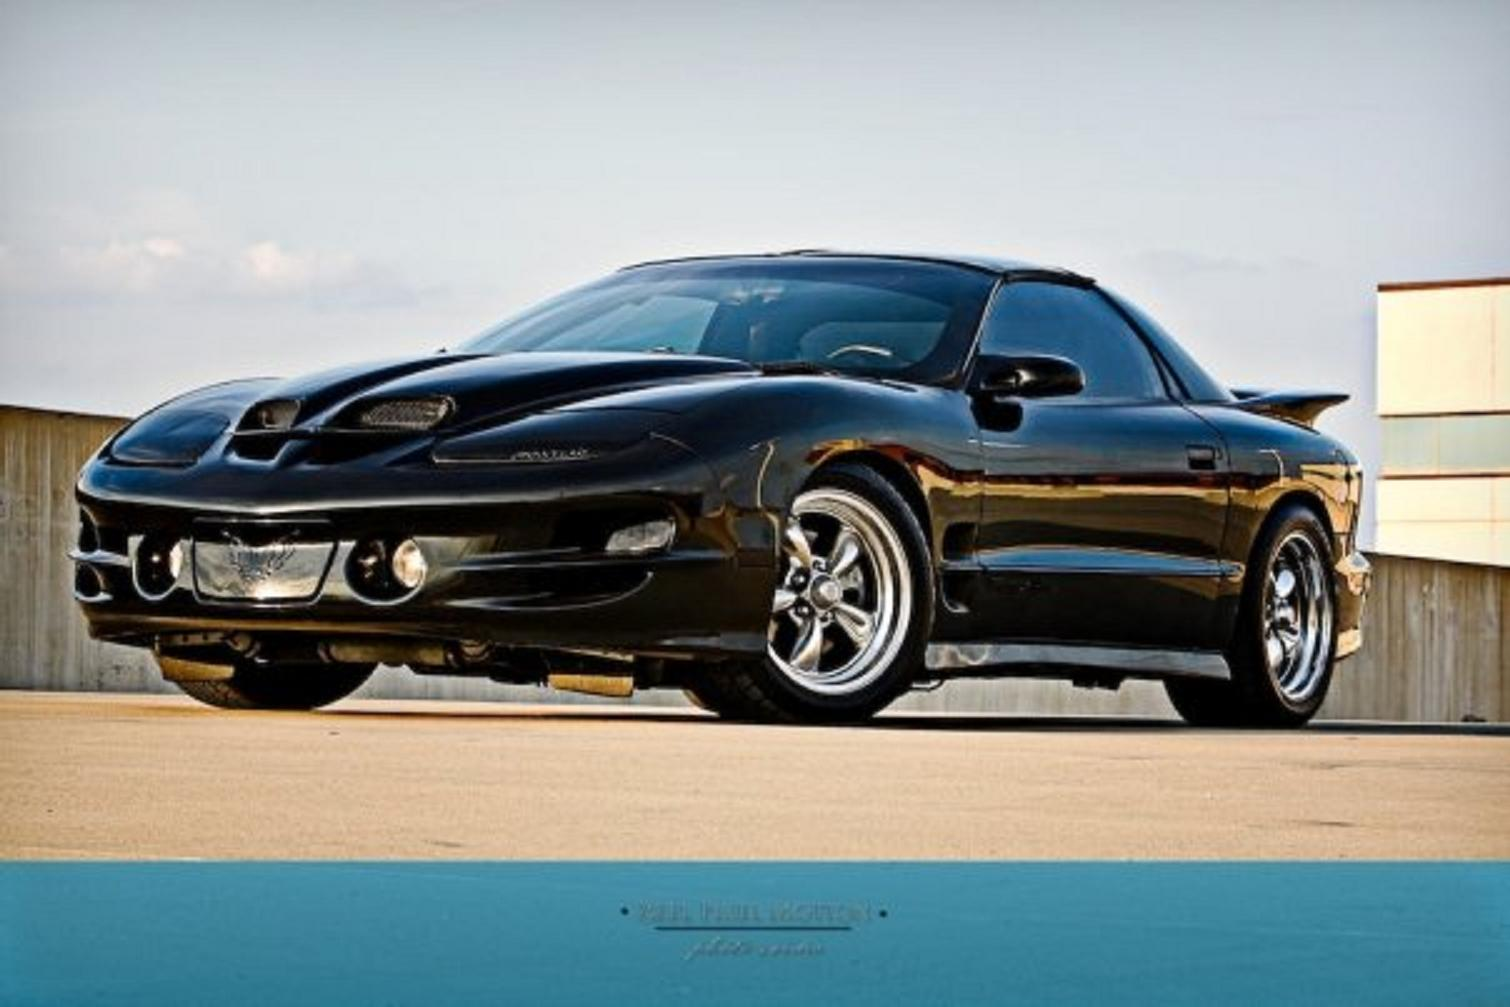 red97firebird's 2000 Pontiac Trans Am